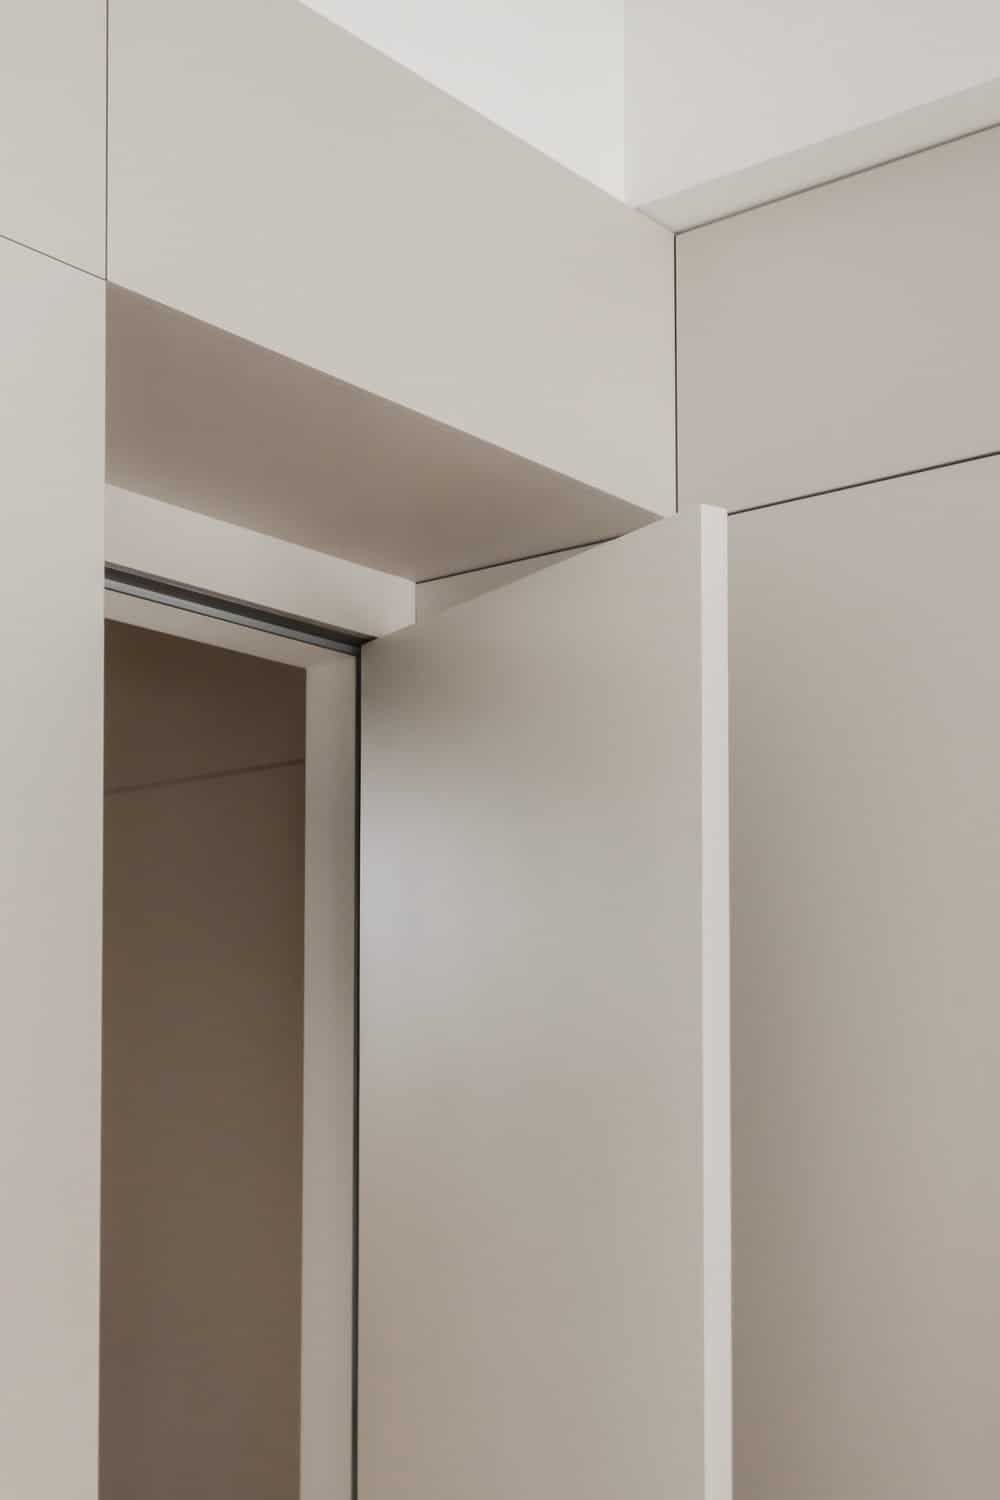 This is a close look at the door of the office with the same tone as the wall panels.